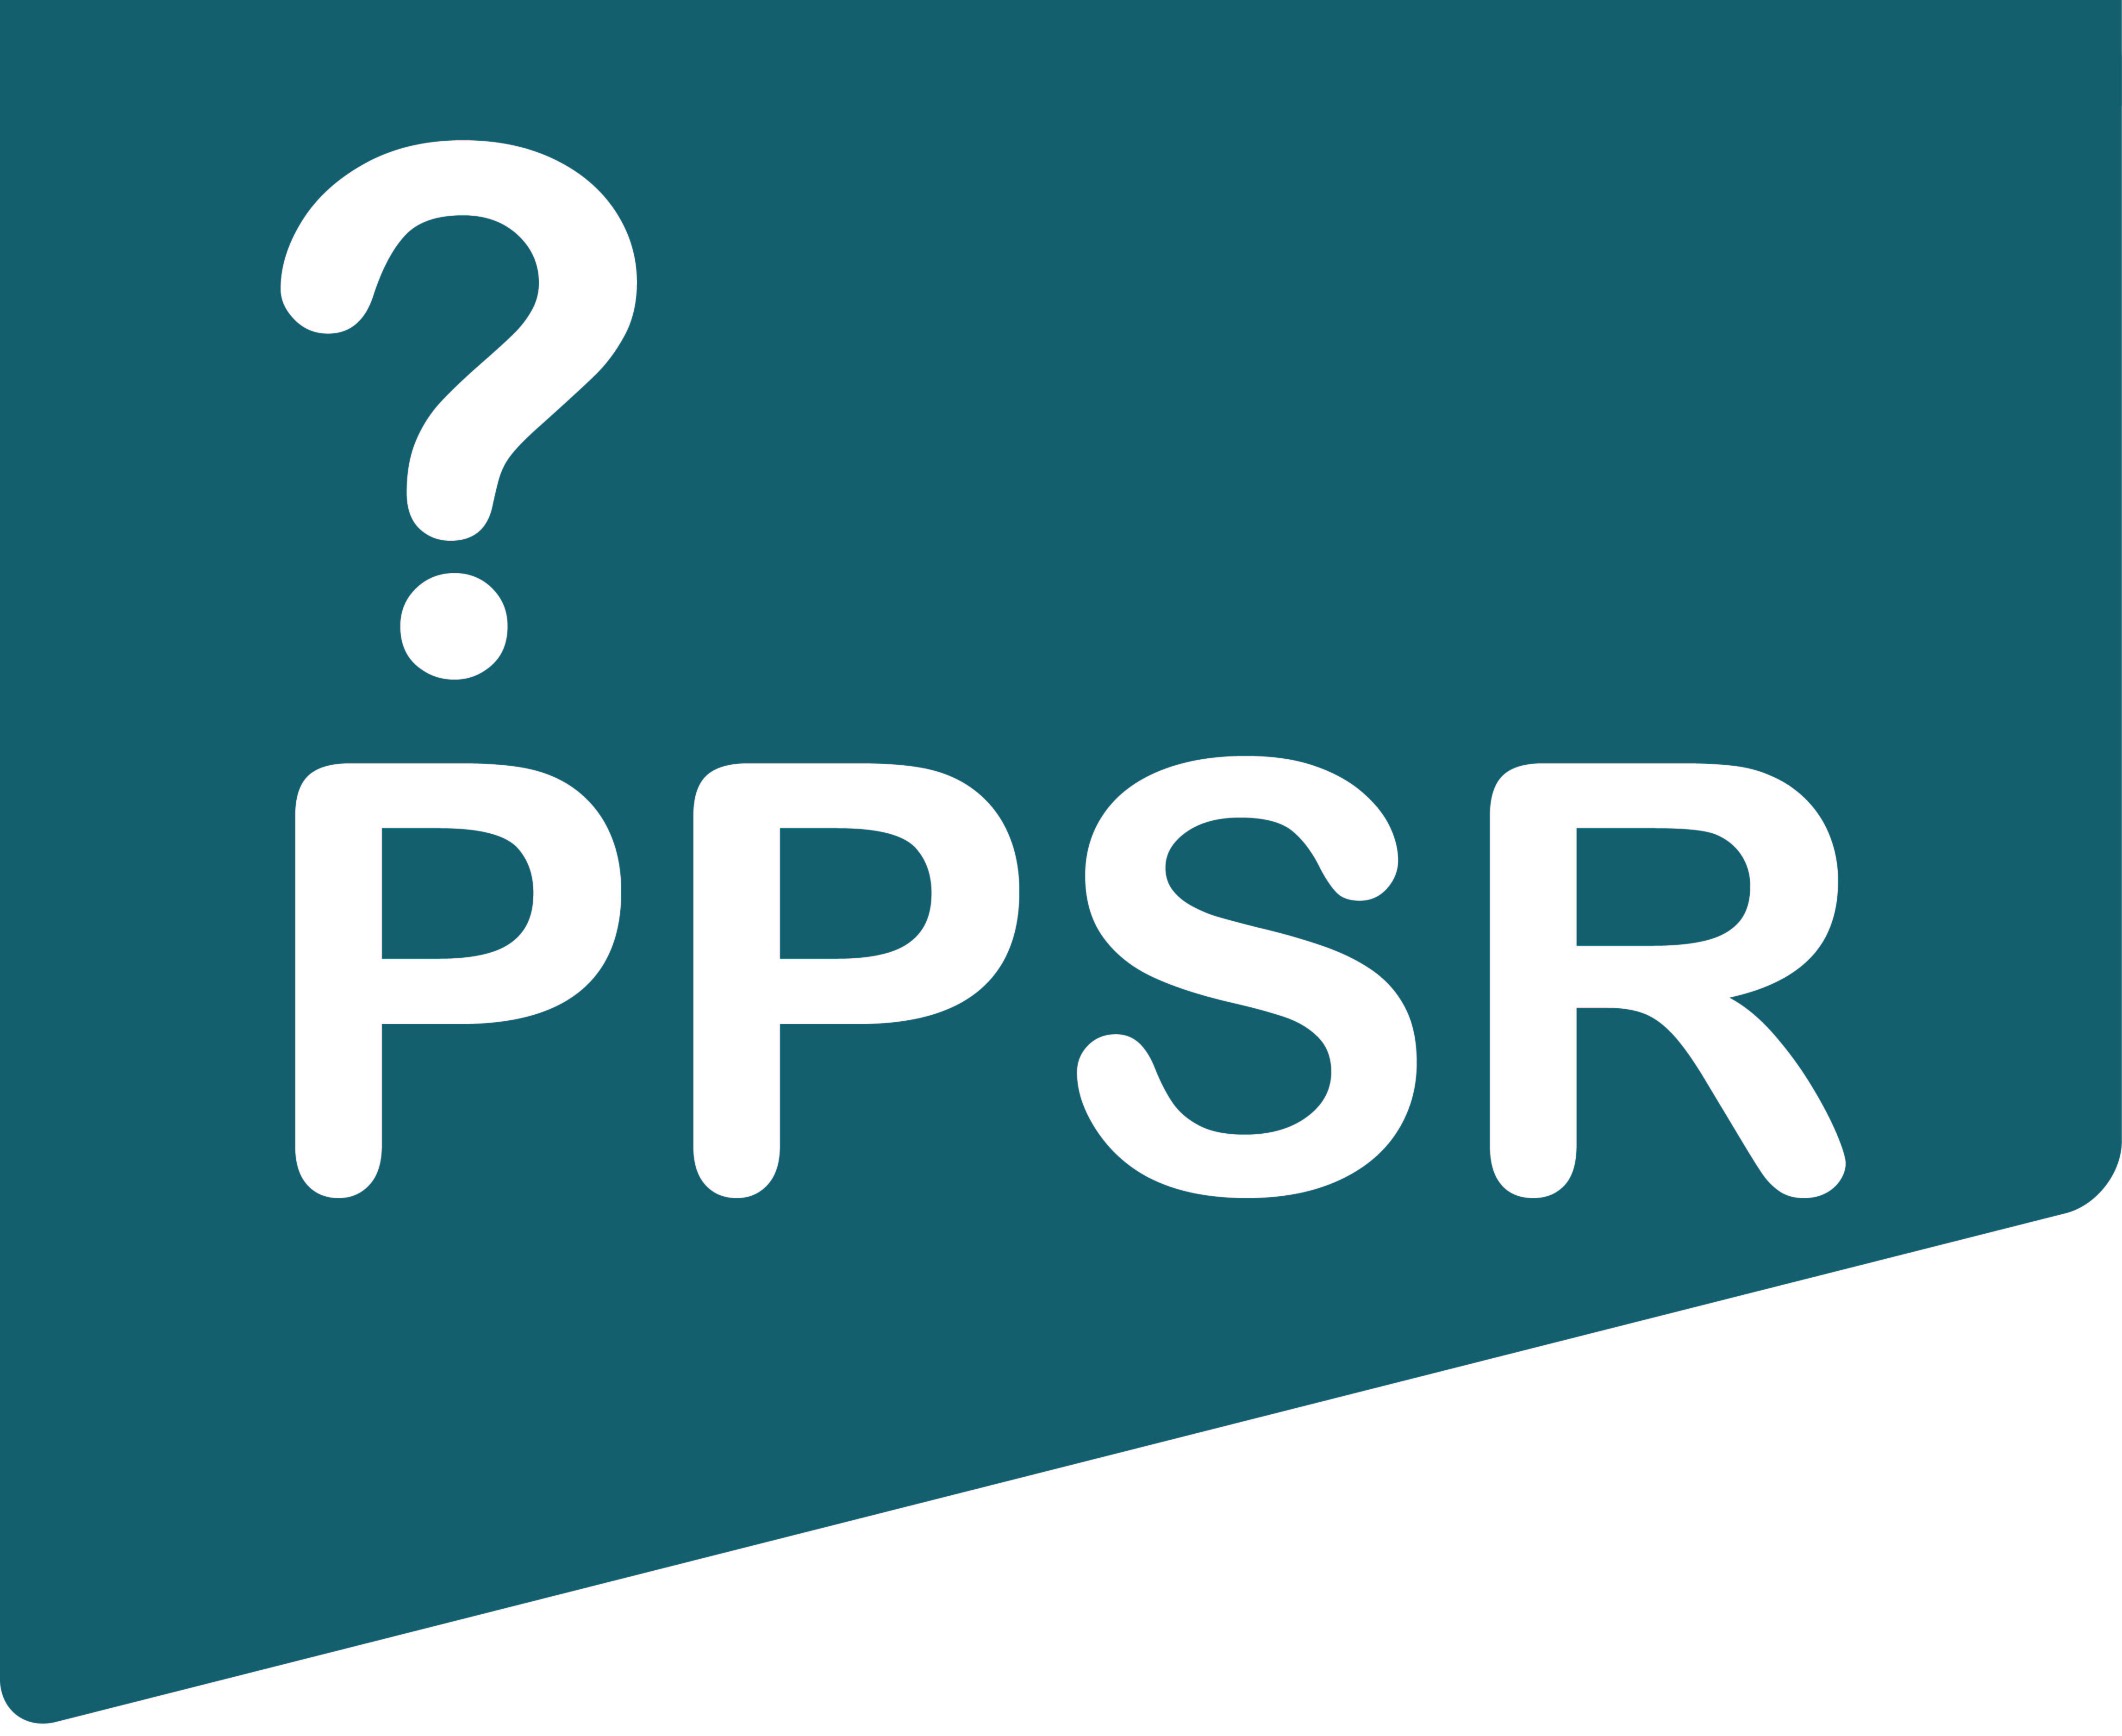 What is the PPSR